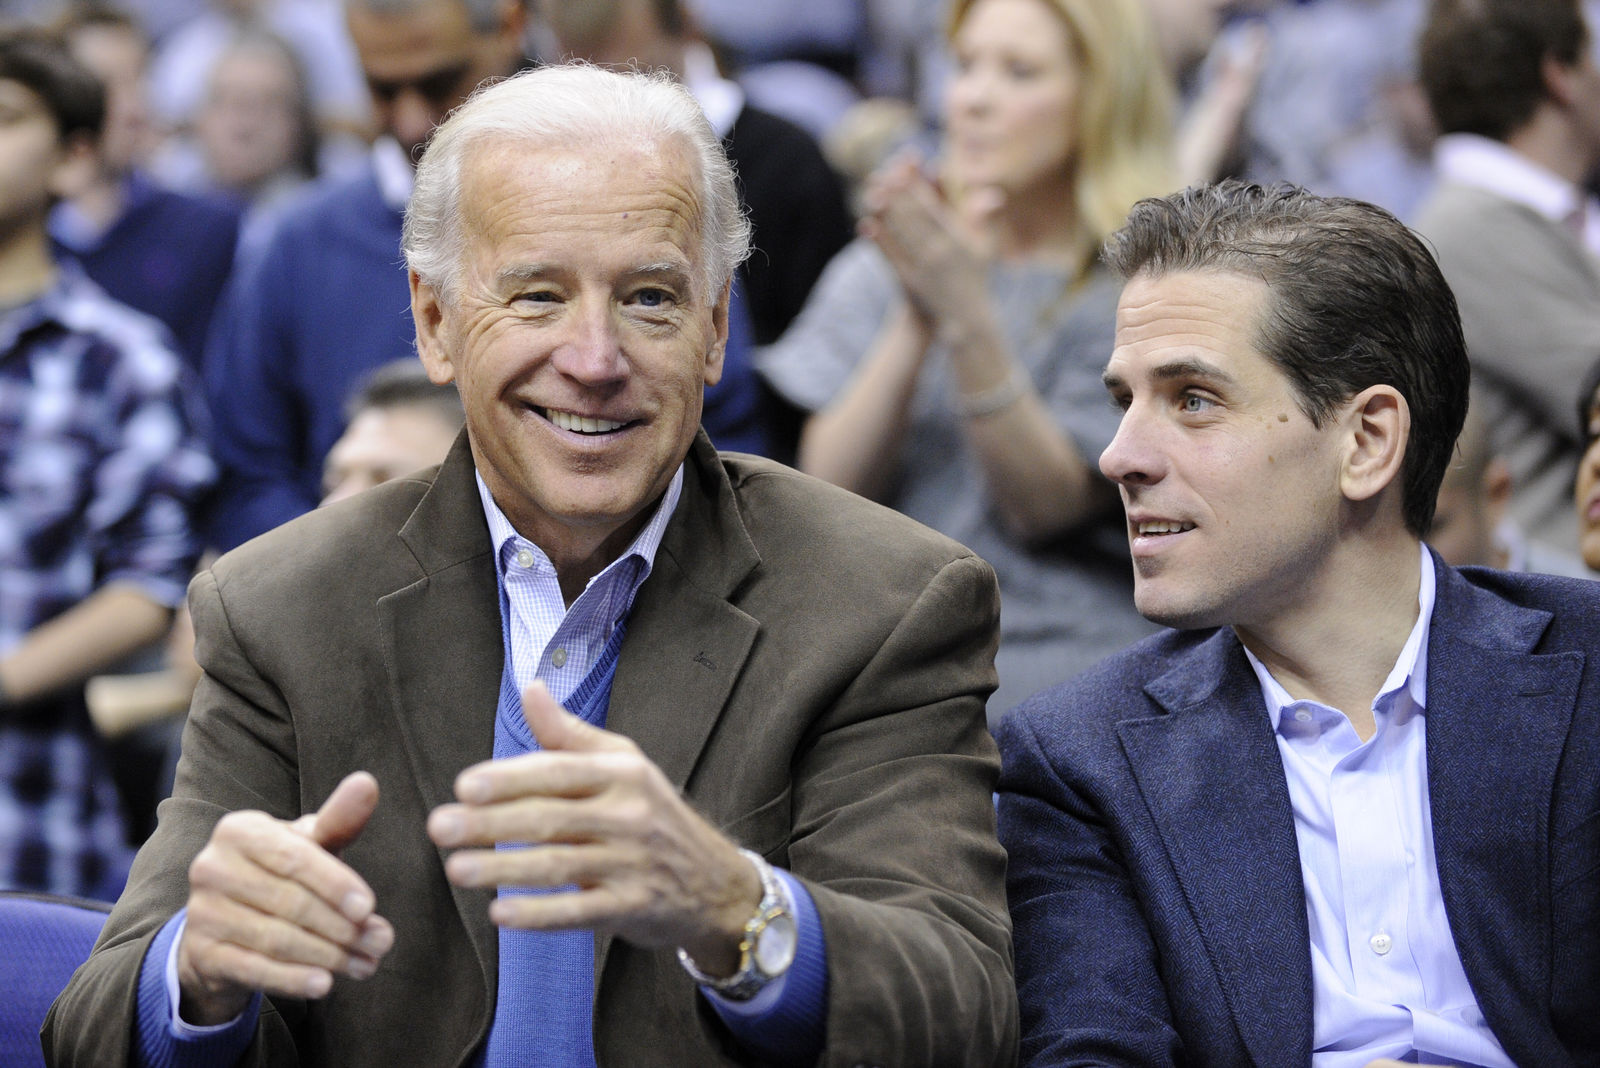 FILE - In this Jan. 30, 2010, file photo, Vice President Joe Biden, left, with his son Hunter, right, at the Duke Georgetown NCAA college basketball game in Washington. (AP Photo/Nick Wass, File)